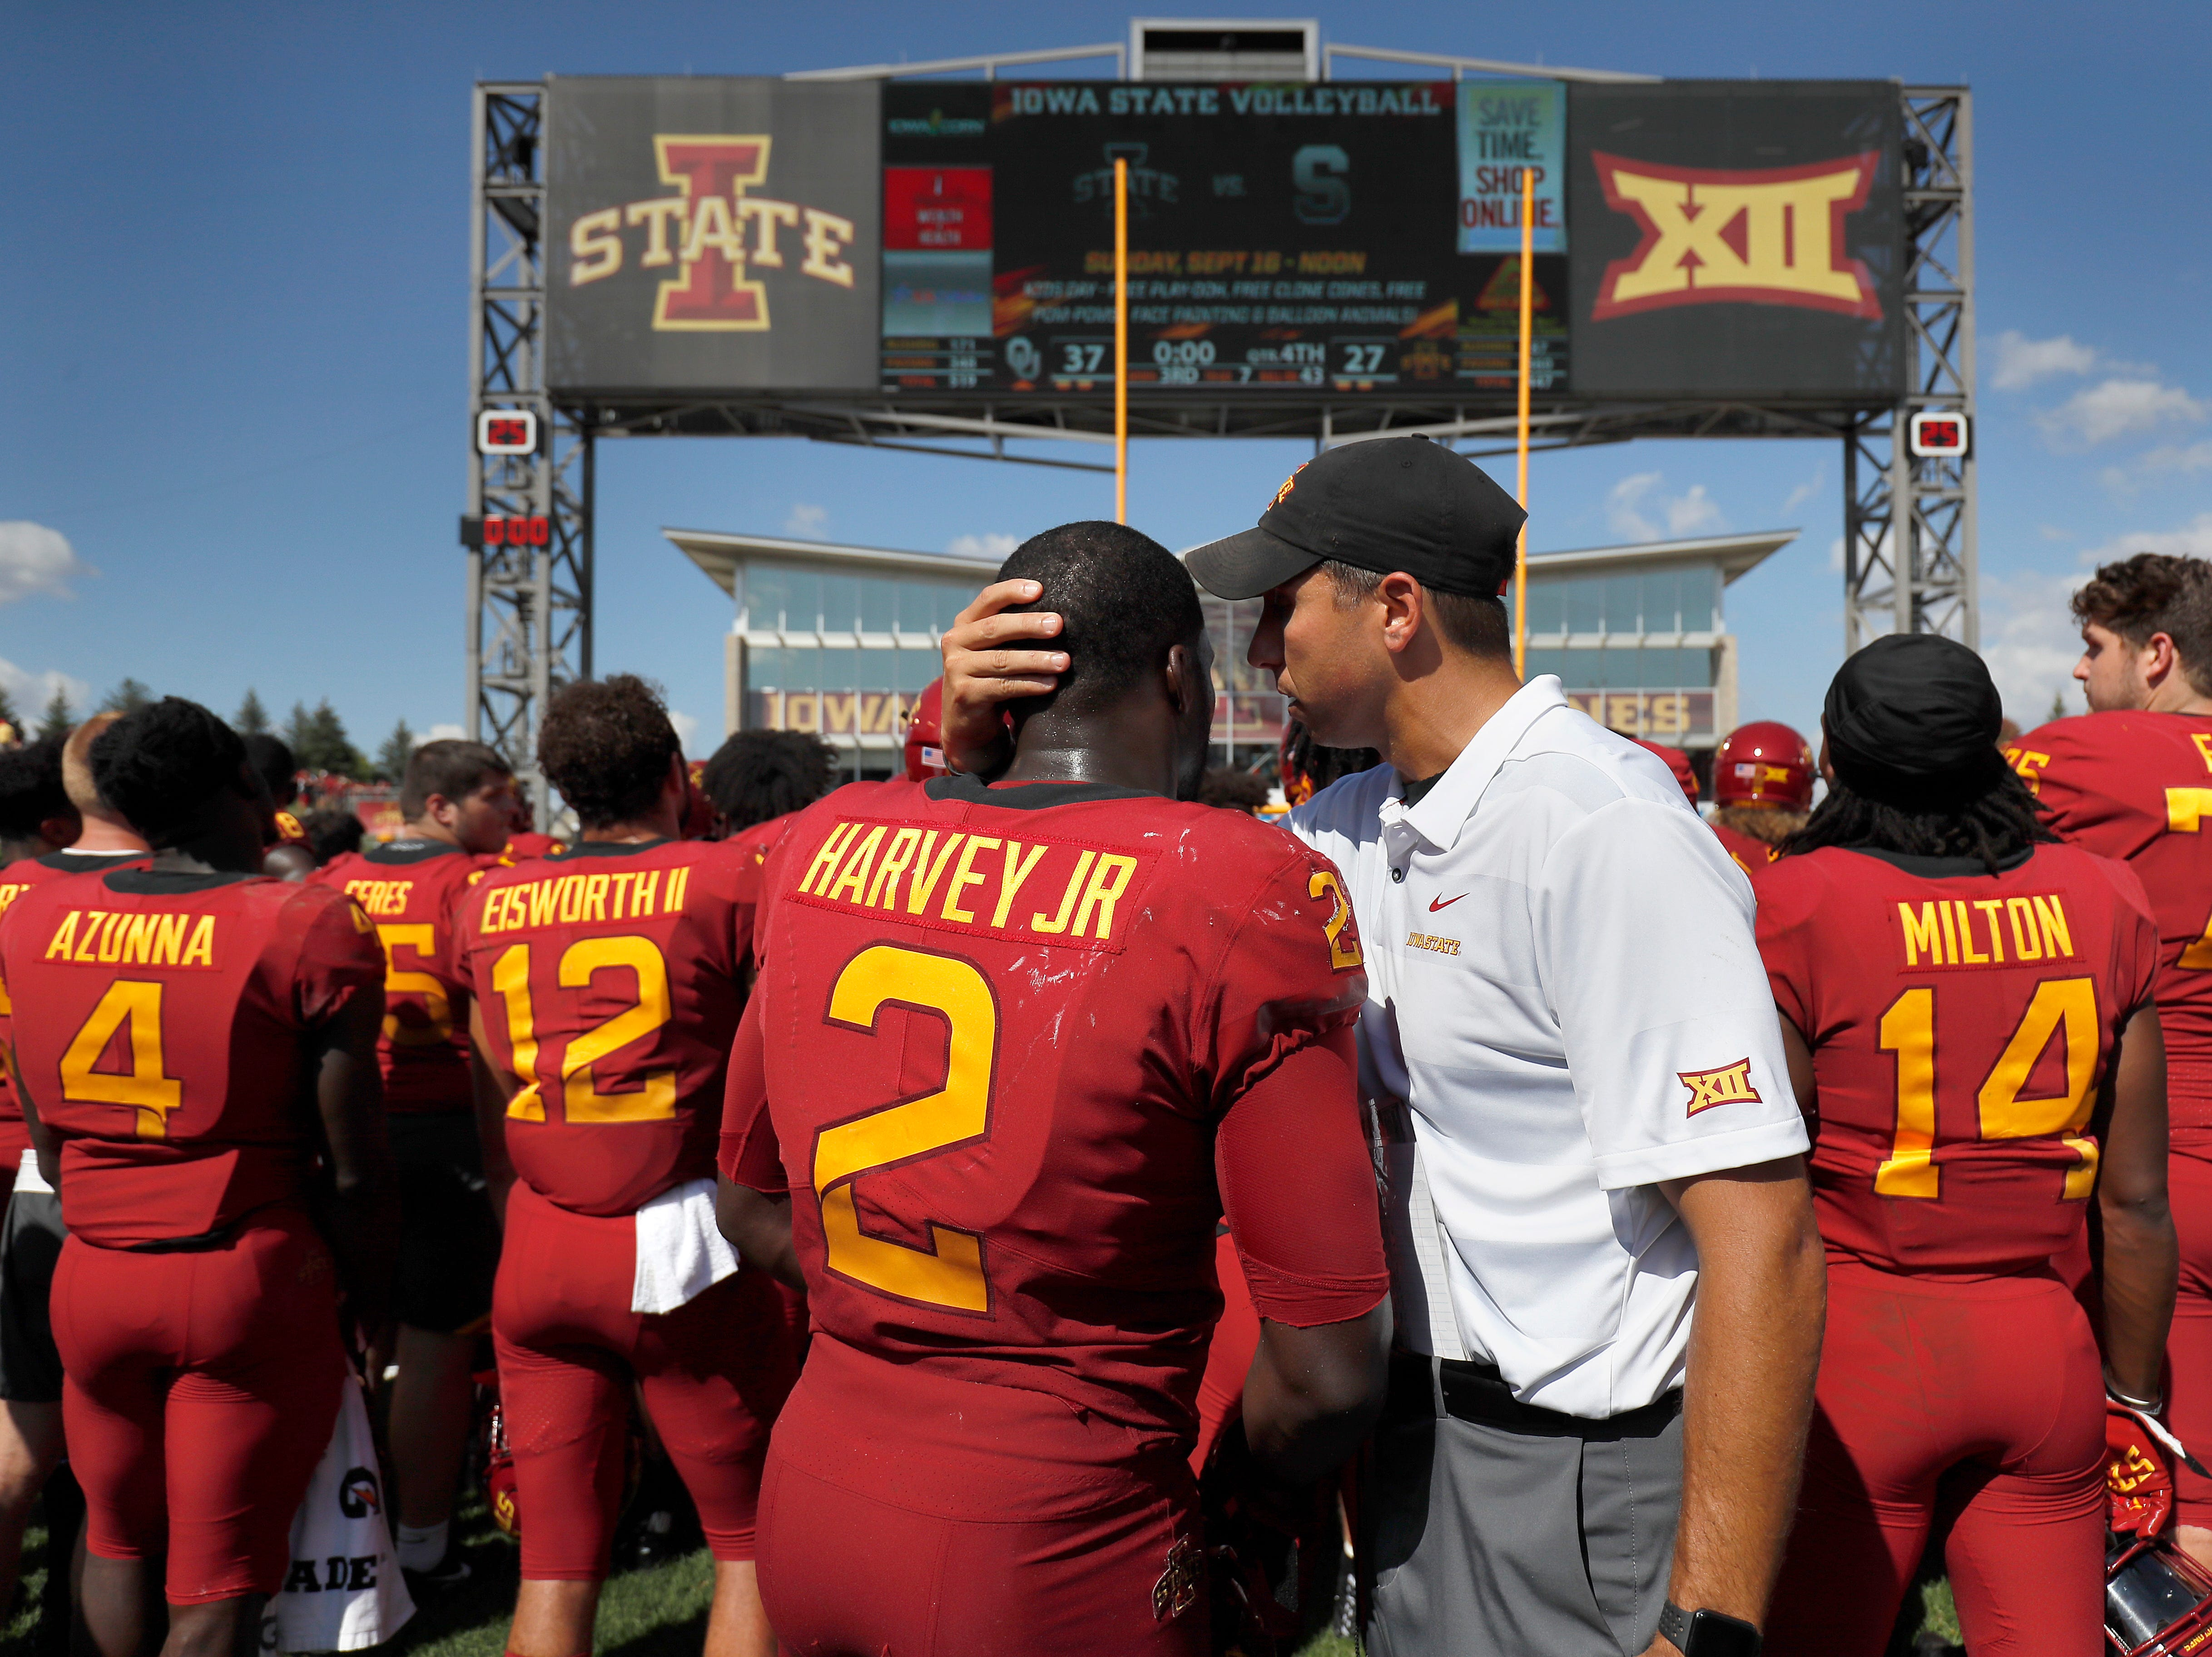 Iowa State head coach Matt Campbell, right, pulls Iowa State linebacker Willie Harvey, left, aside after their 37-27 loss to Oklahoma in an NCAA college football game Saturday, Sept. 15, 2018, in Ames, Iowa.